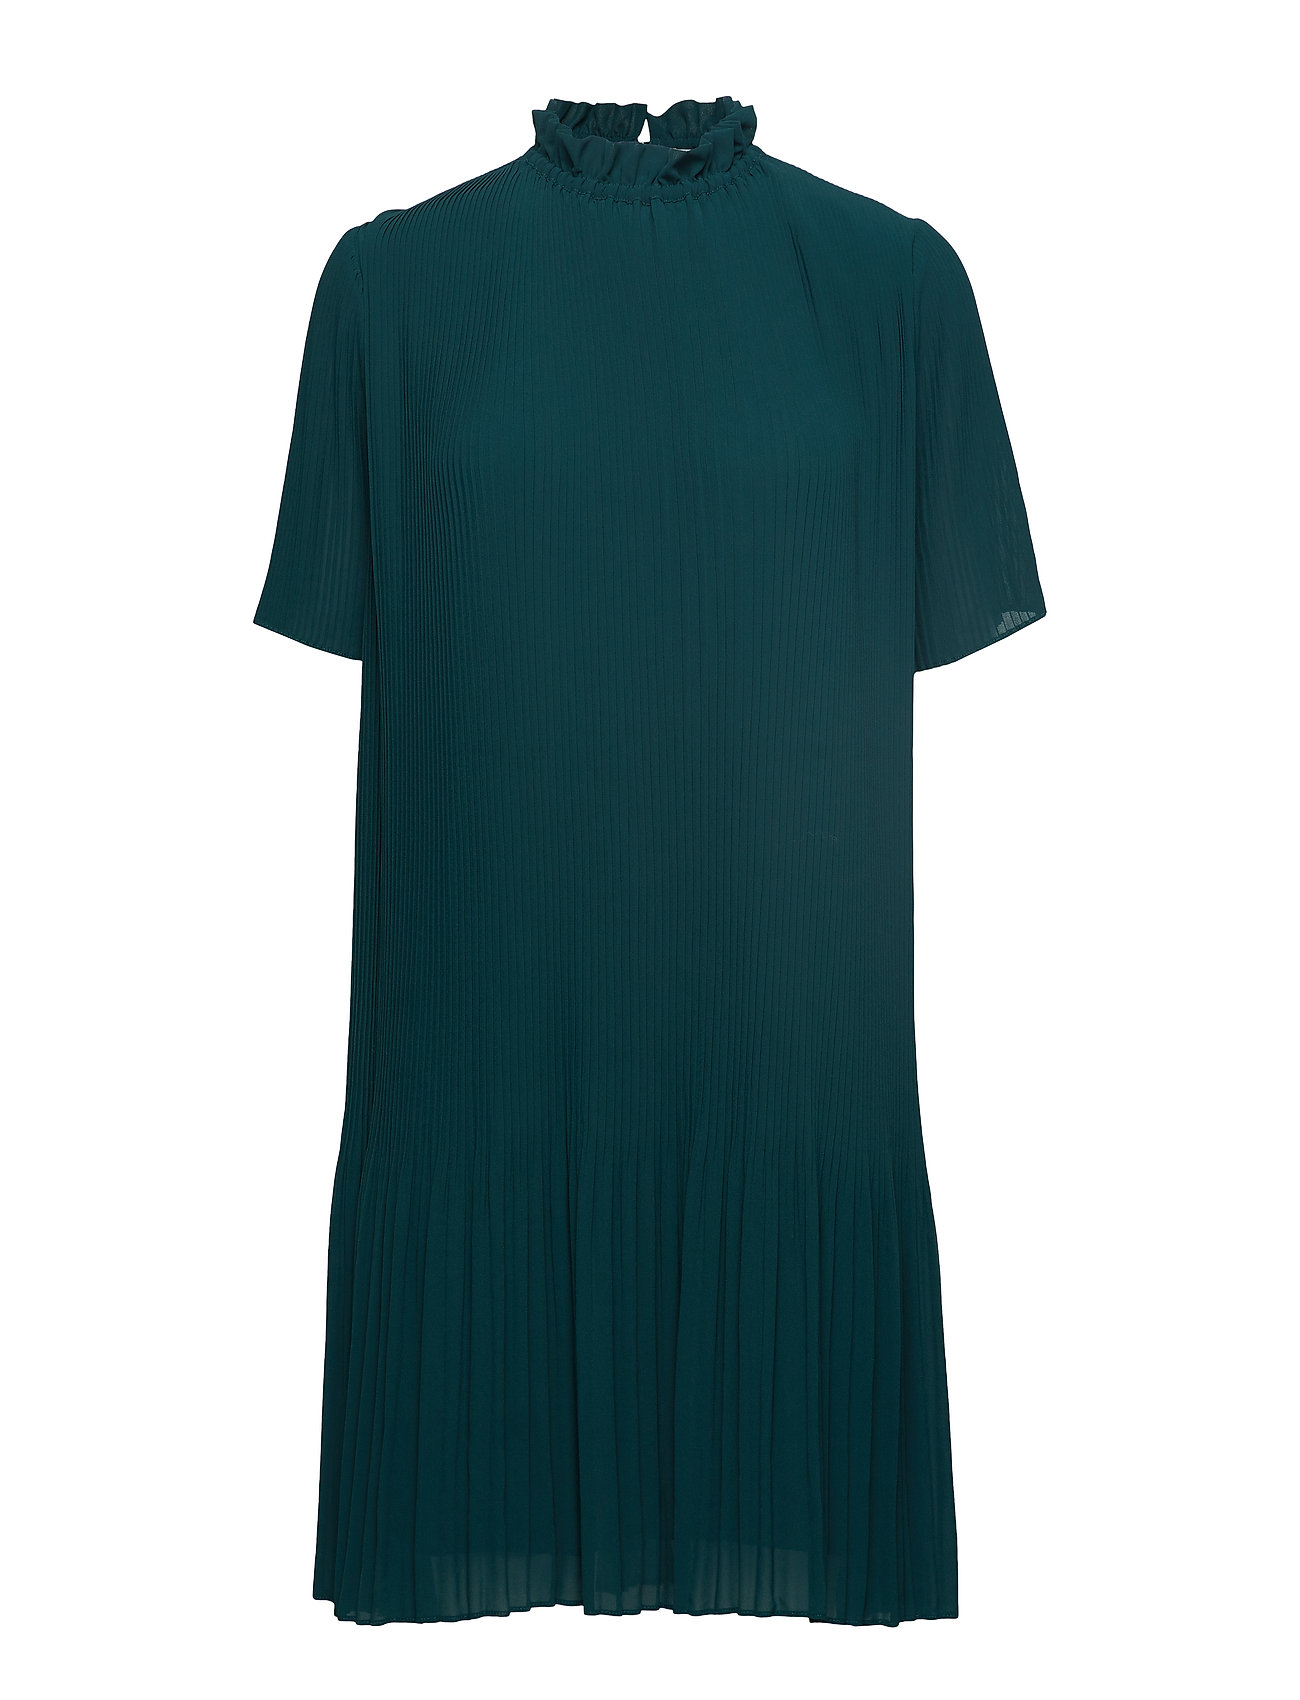 Samsøe & Samsøe Malie ss dress 6621 - SEA MOSS